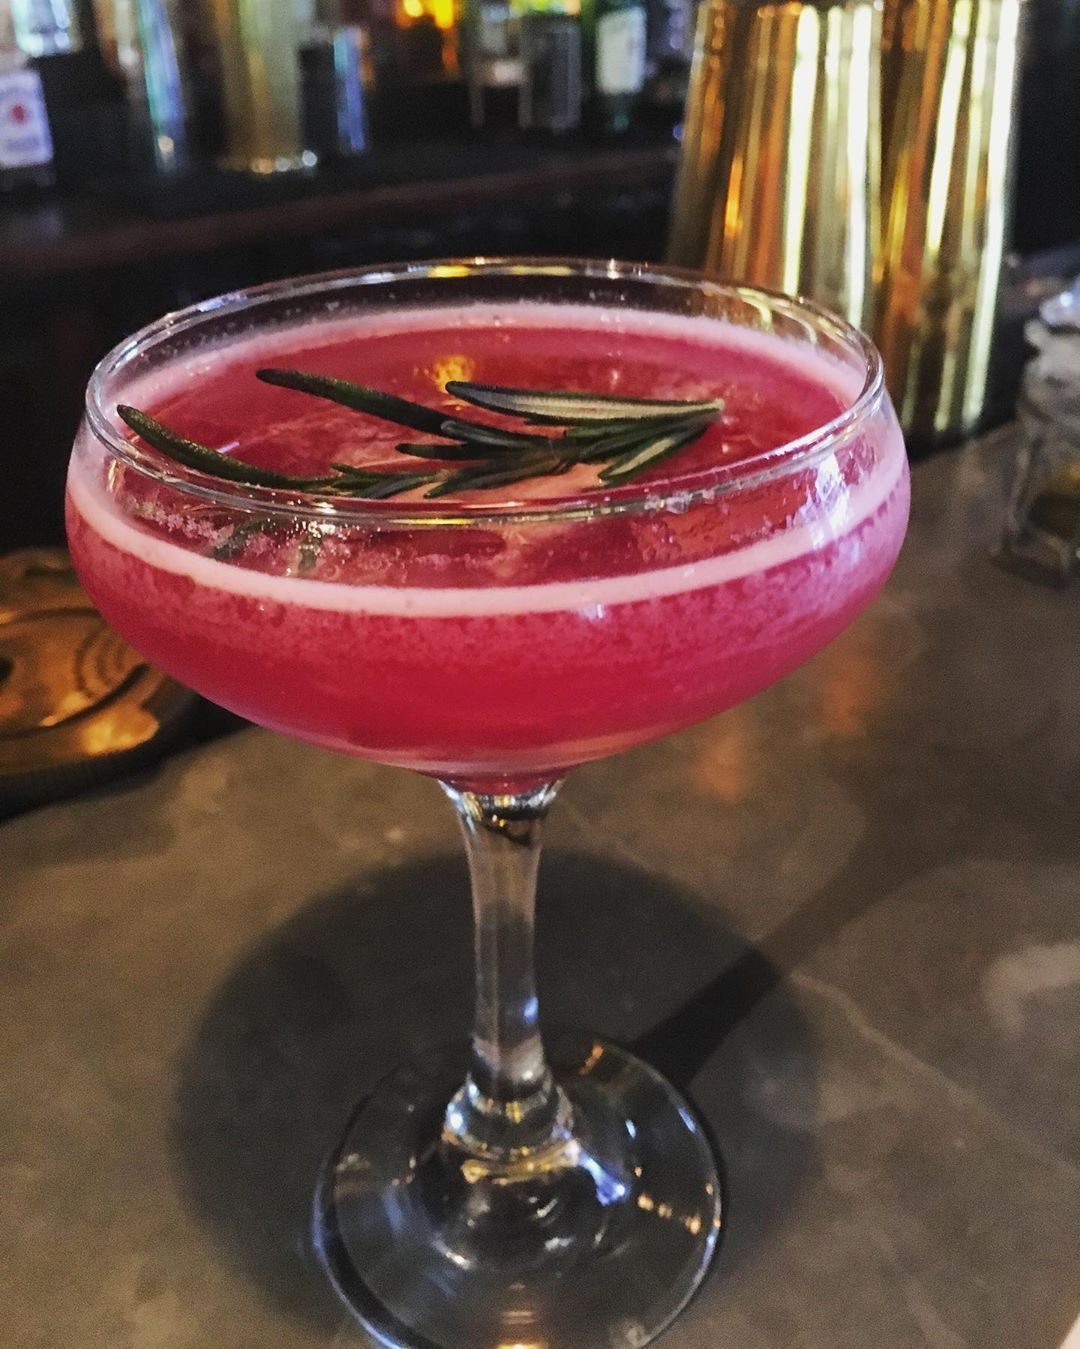 Beet The System Stateside Vodka Organic Beet Juice Lemon Ginger And Burnt Rosemary This Quaint Stone Historical Building Was Once A Salt Shop In 1751 Eve